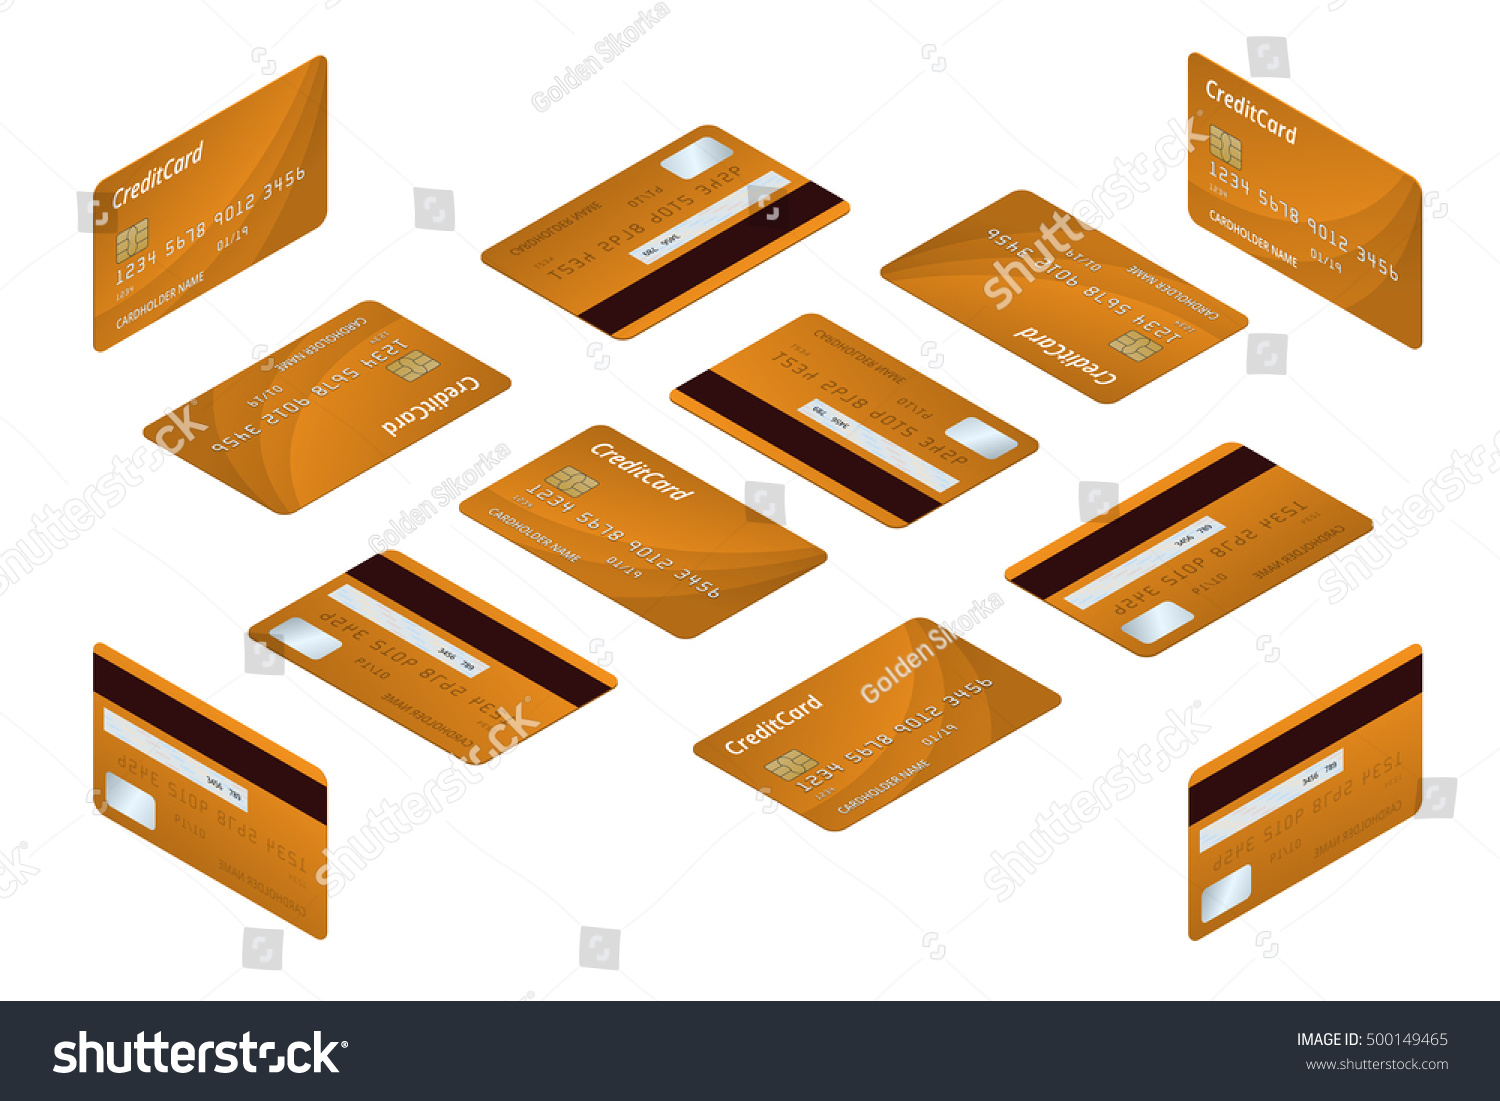 Credit Cards Isometric Money Business Card Stock Vector 500149465 ...